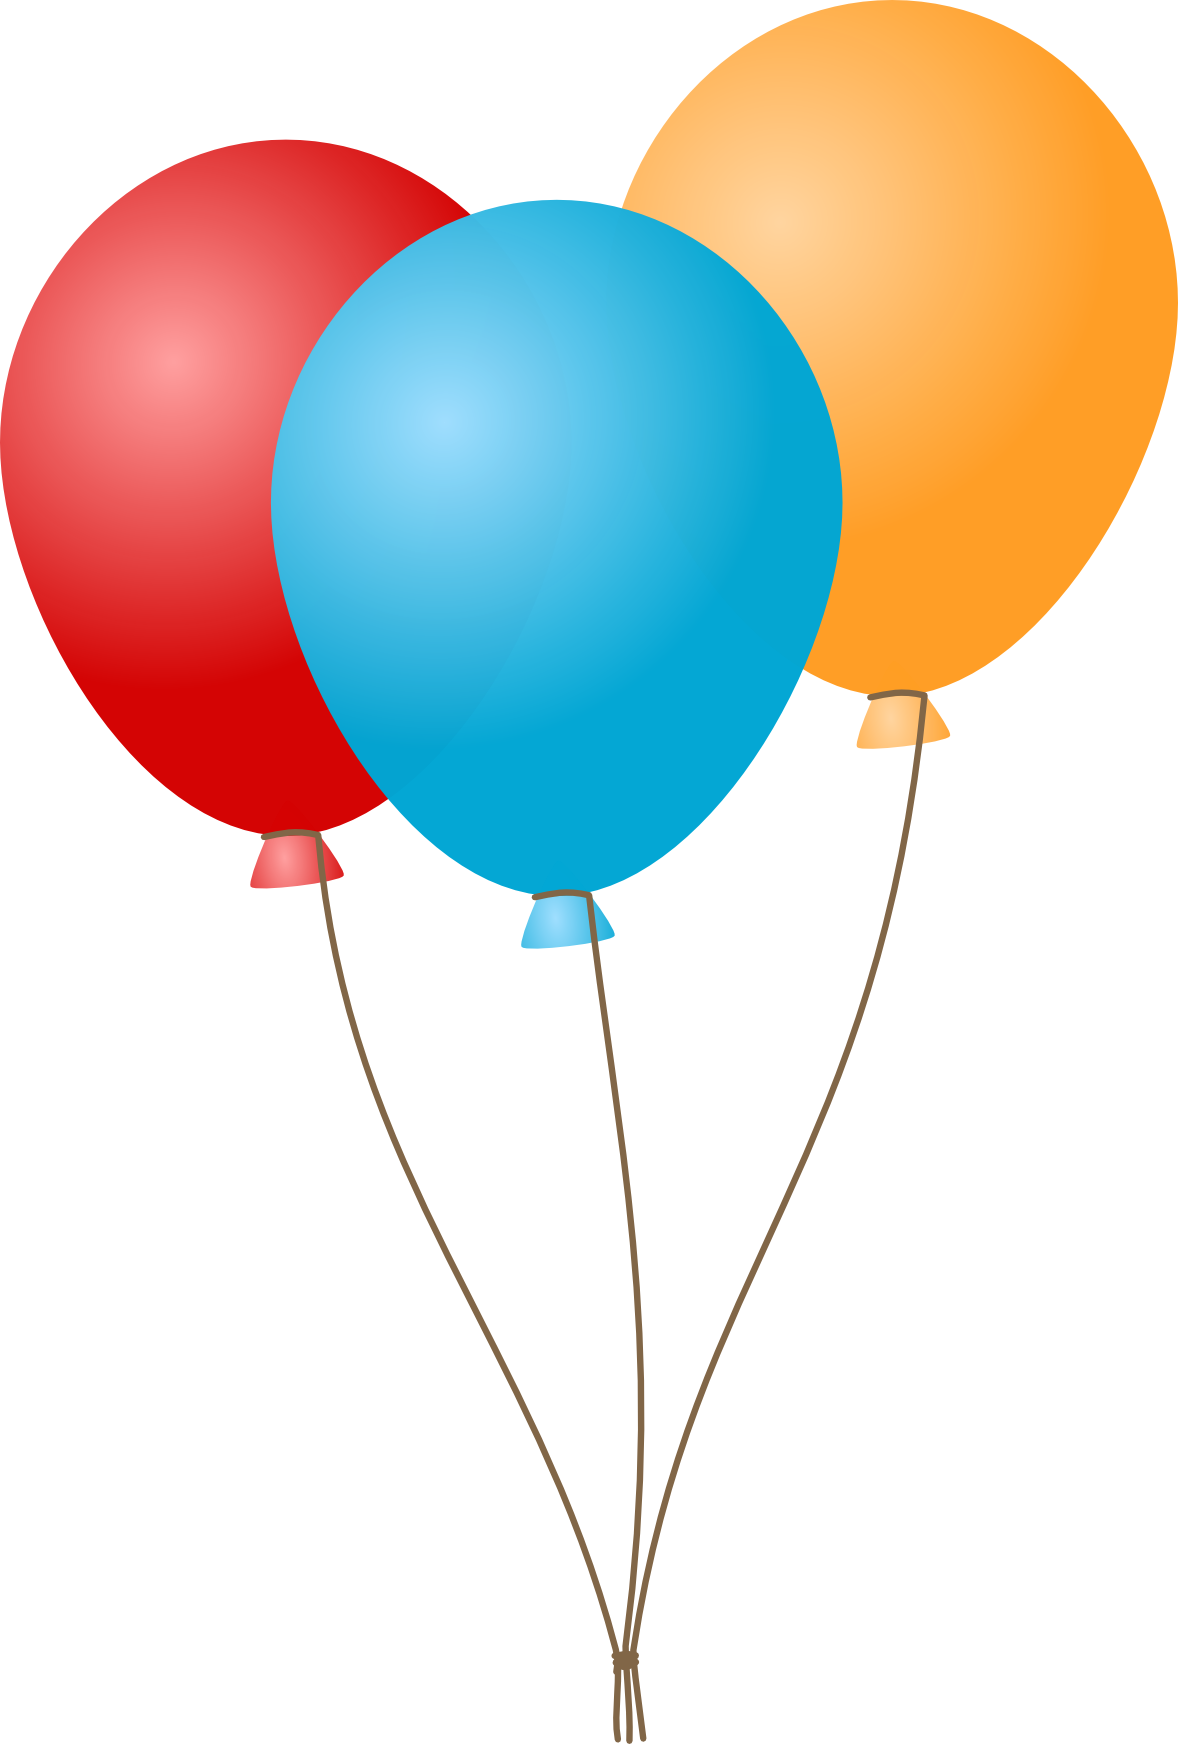 Download Png High-quality Balloon image #28082